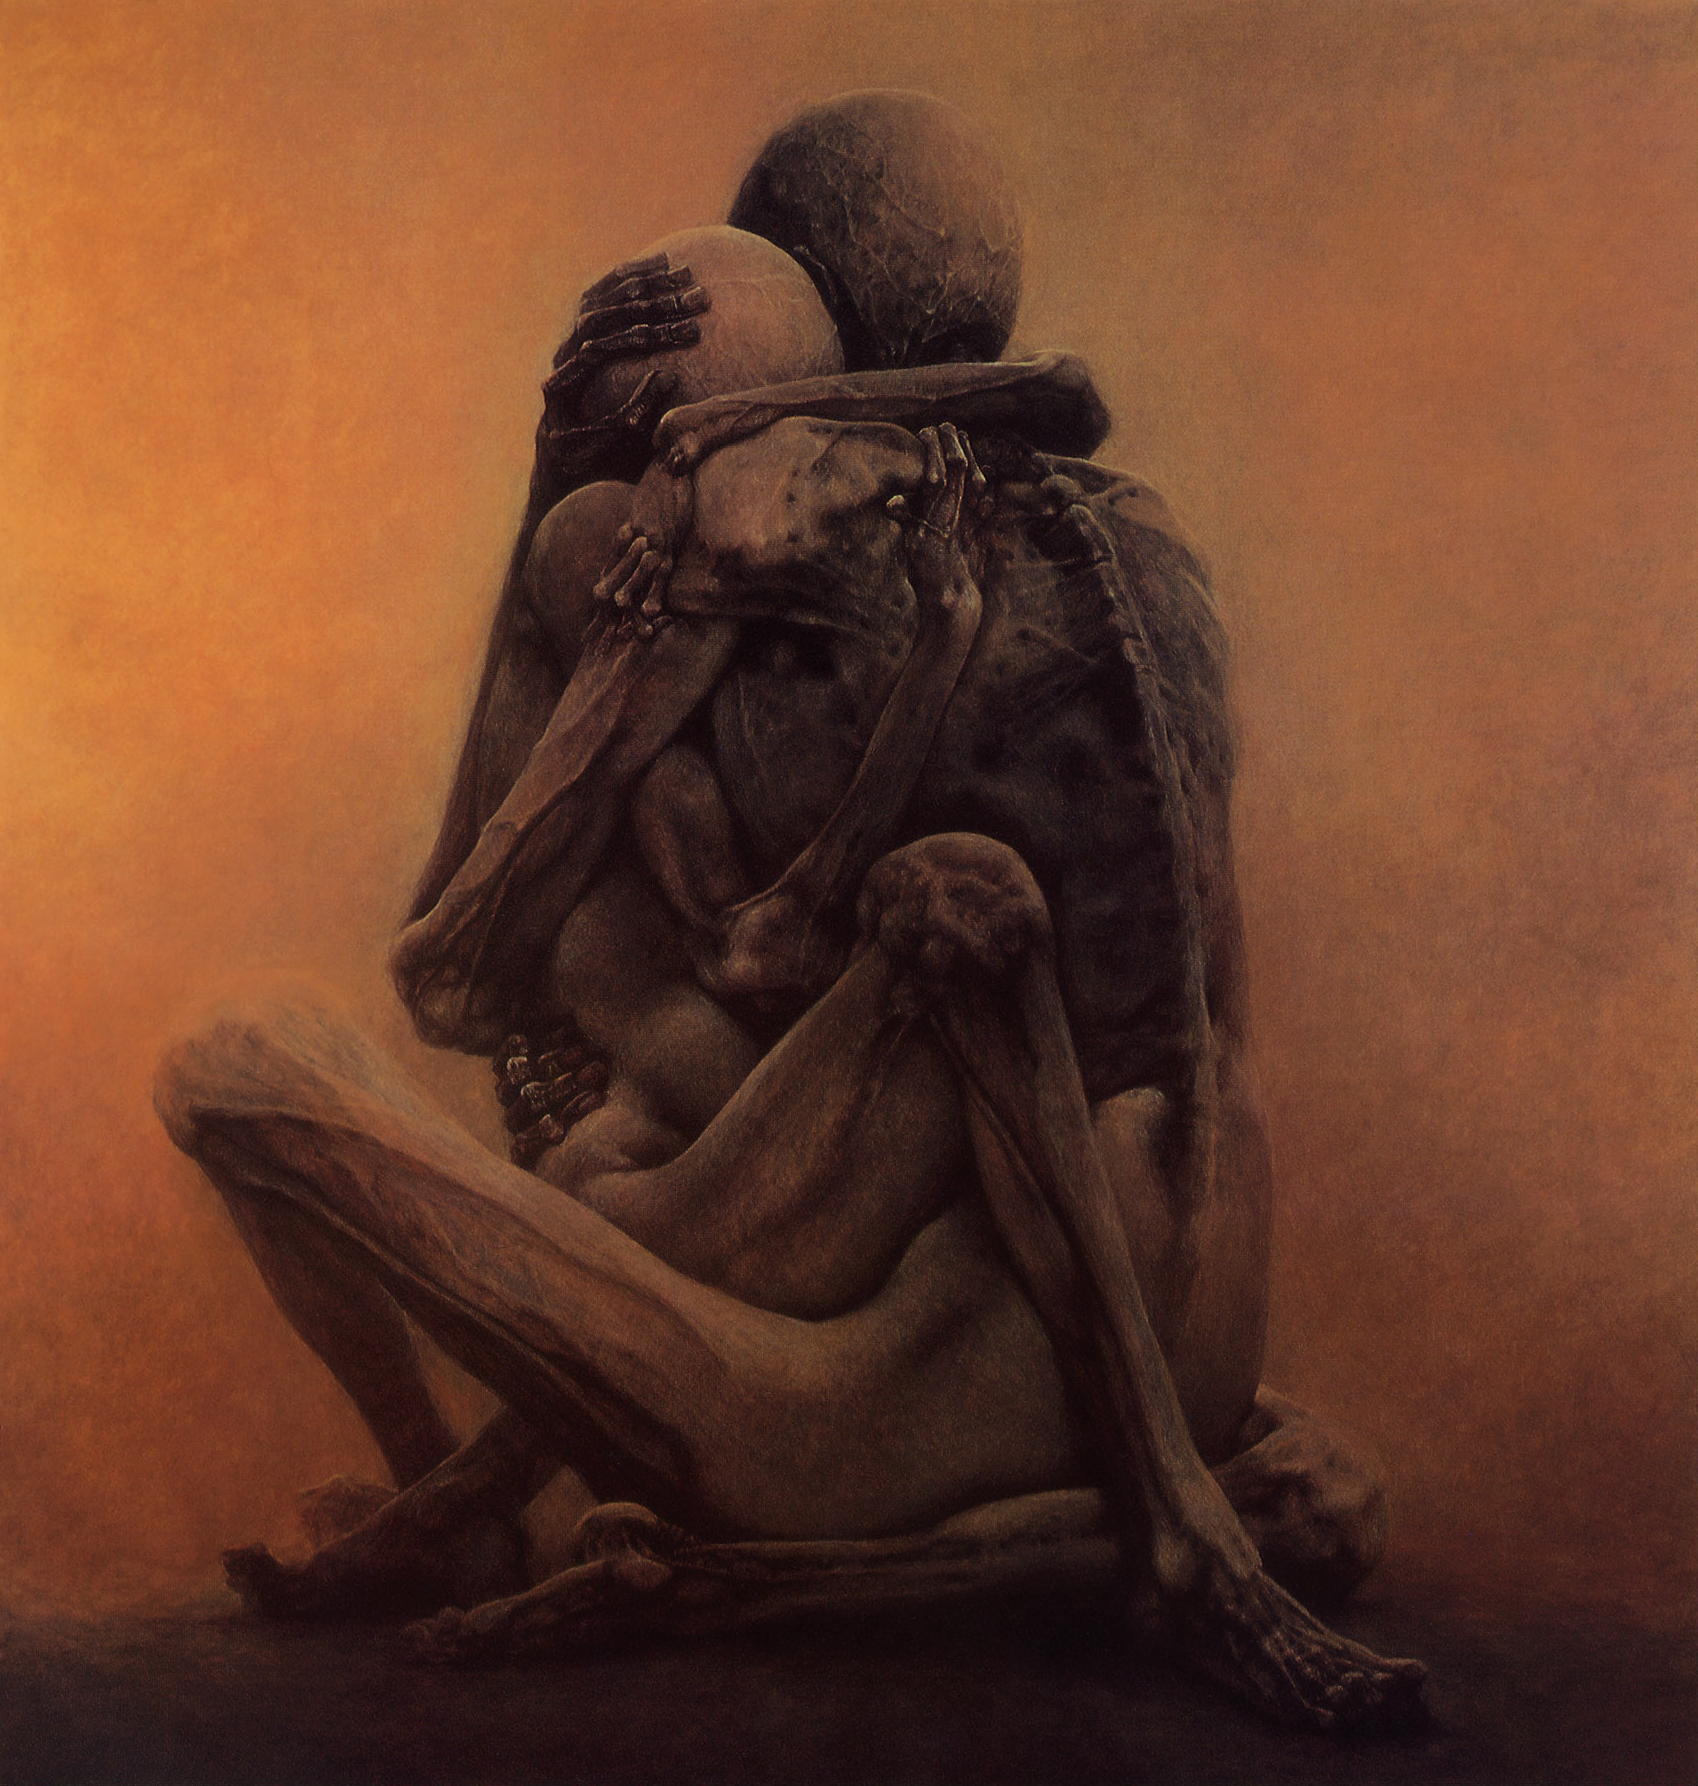 [Image: Untitled_painting_by_Zdzislaw_Beksinski_1984.jpg]